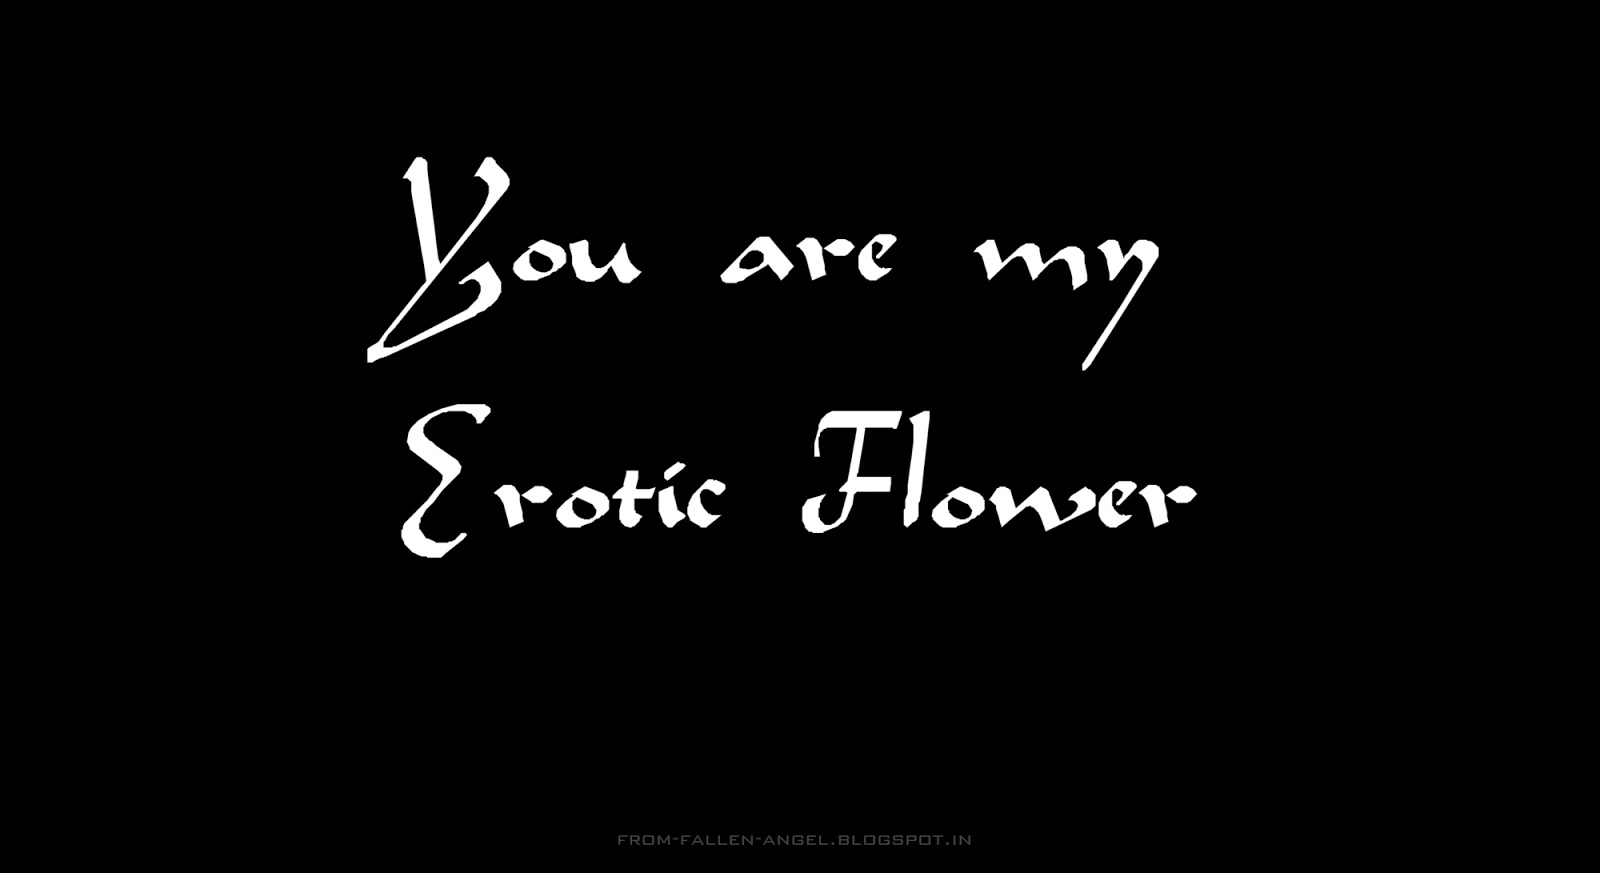 You are my Erotic Flower